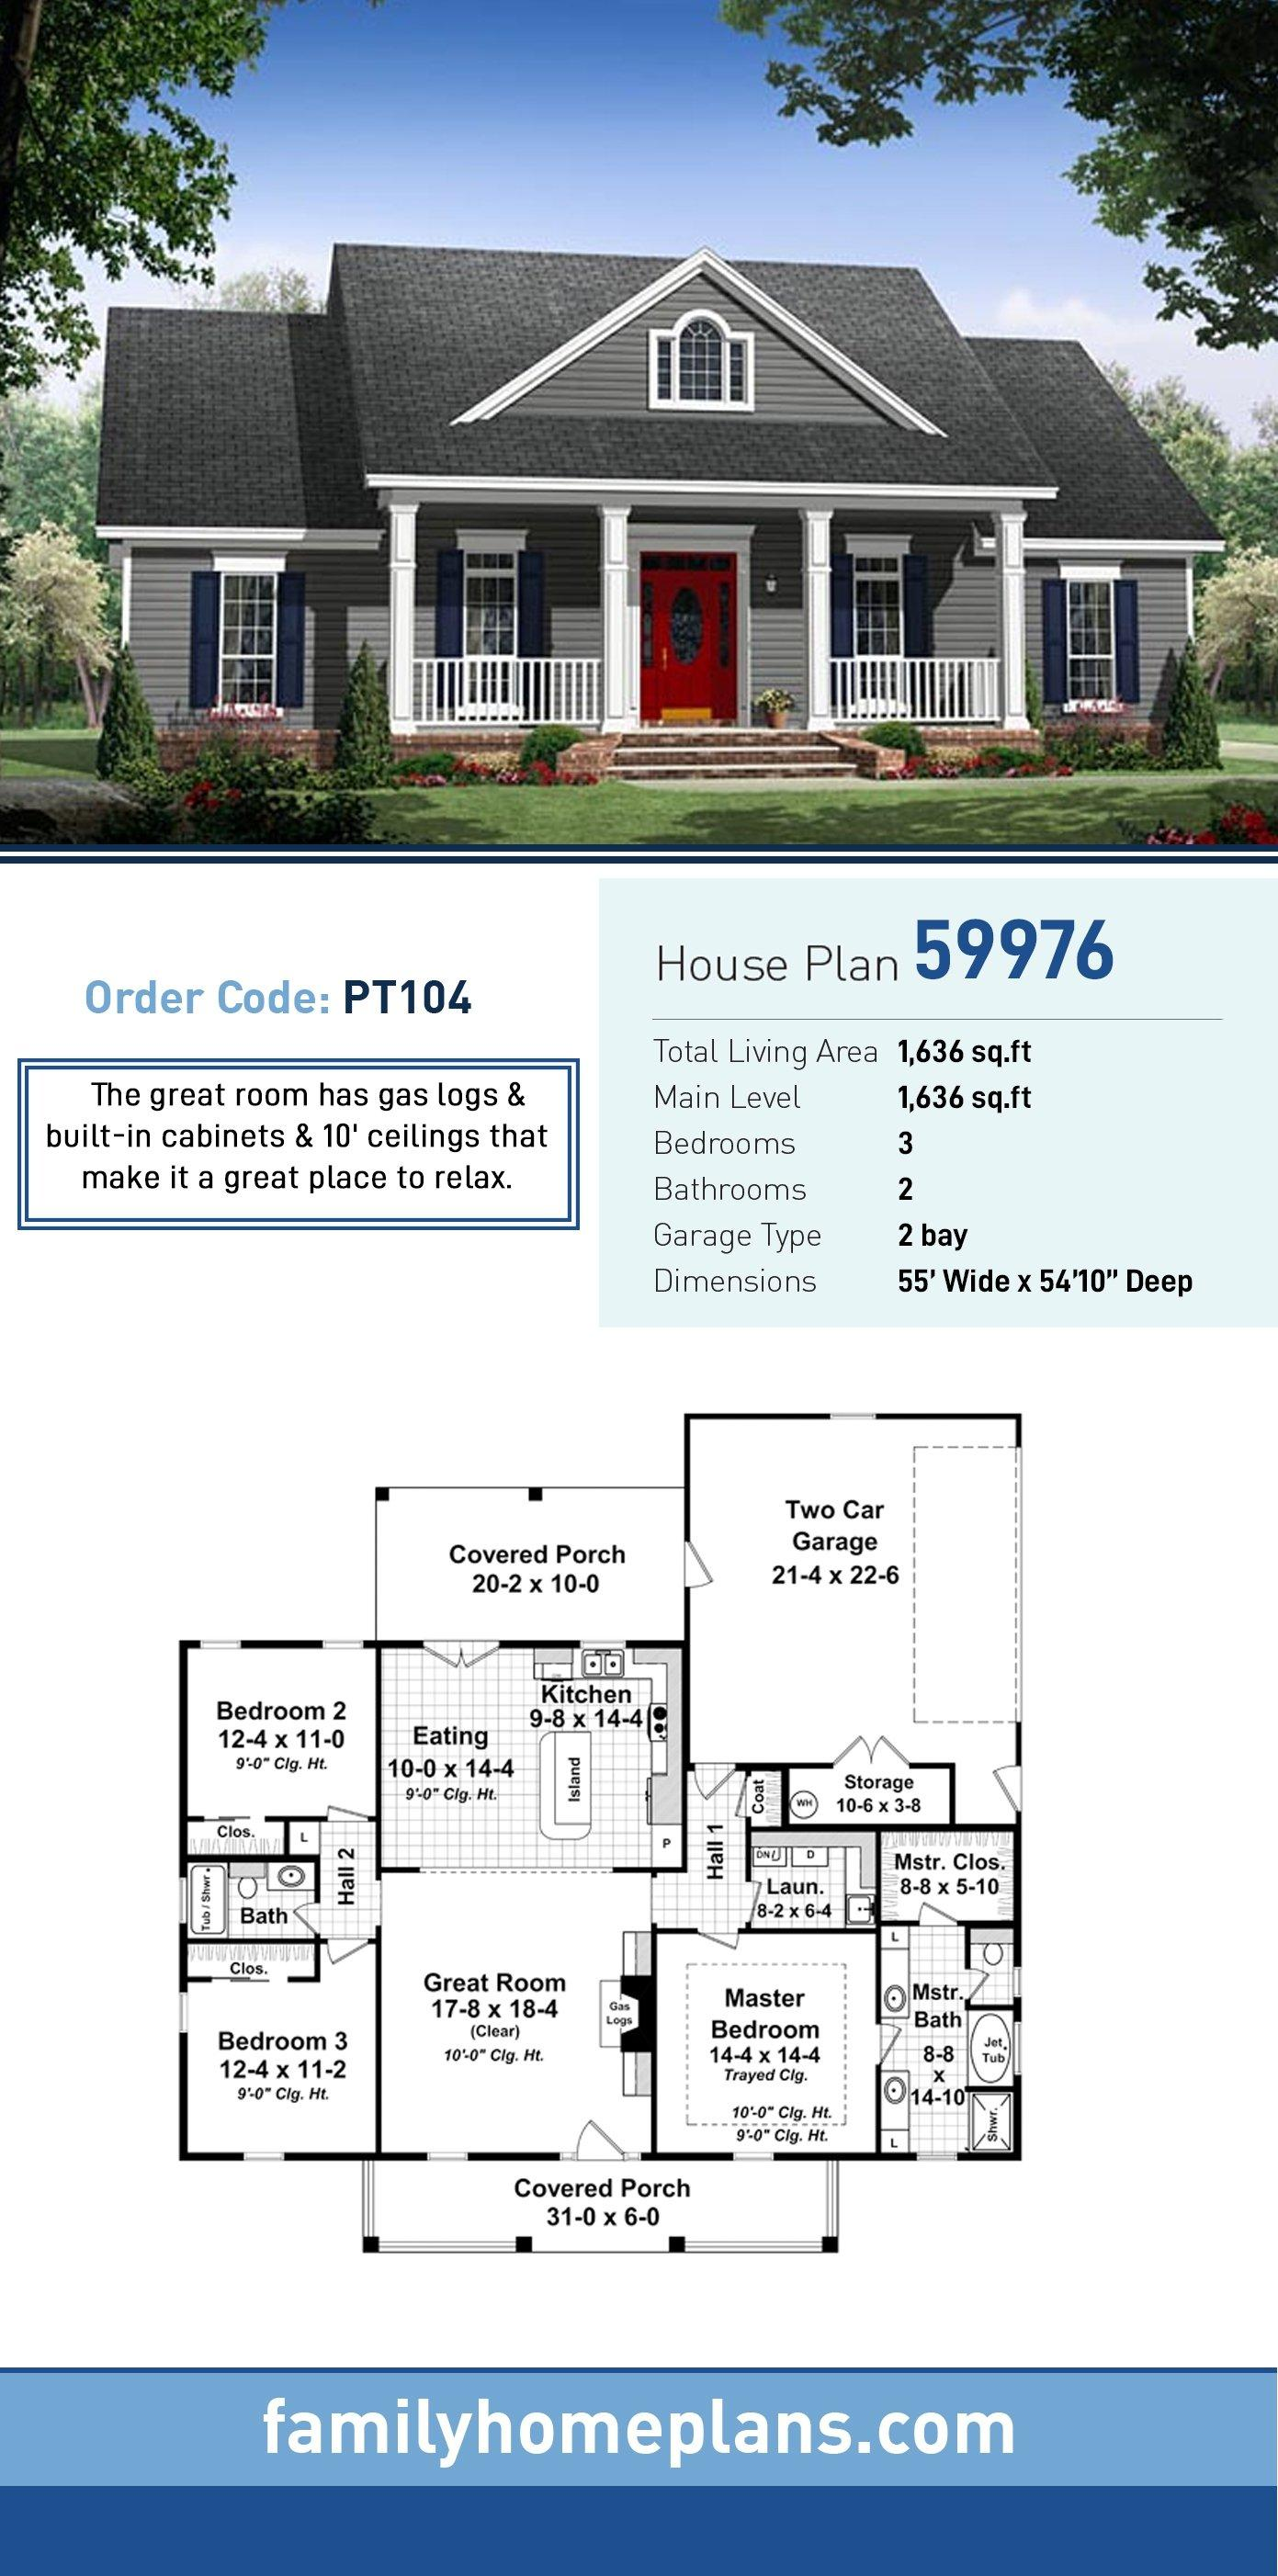 Colonial, Country, Ranch, Traditional House Plan 59976 with 3 Beds, 2 Baths, 2 Car Garage